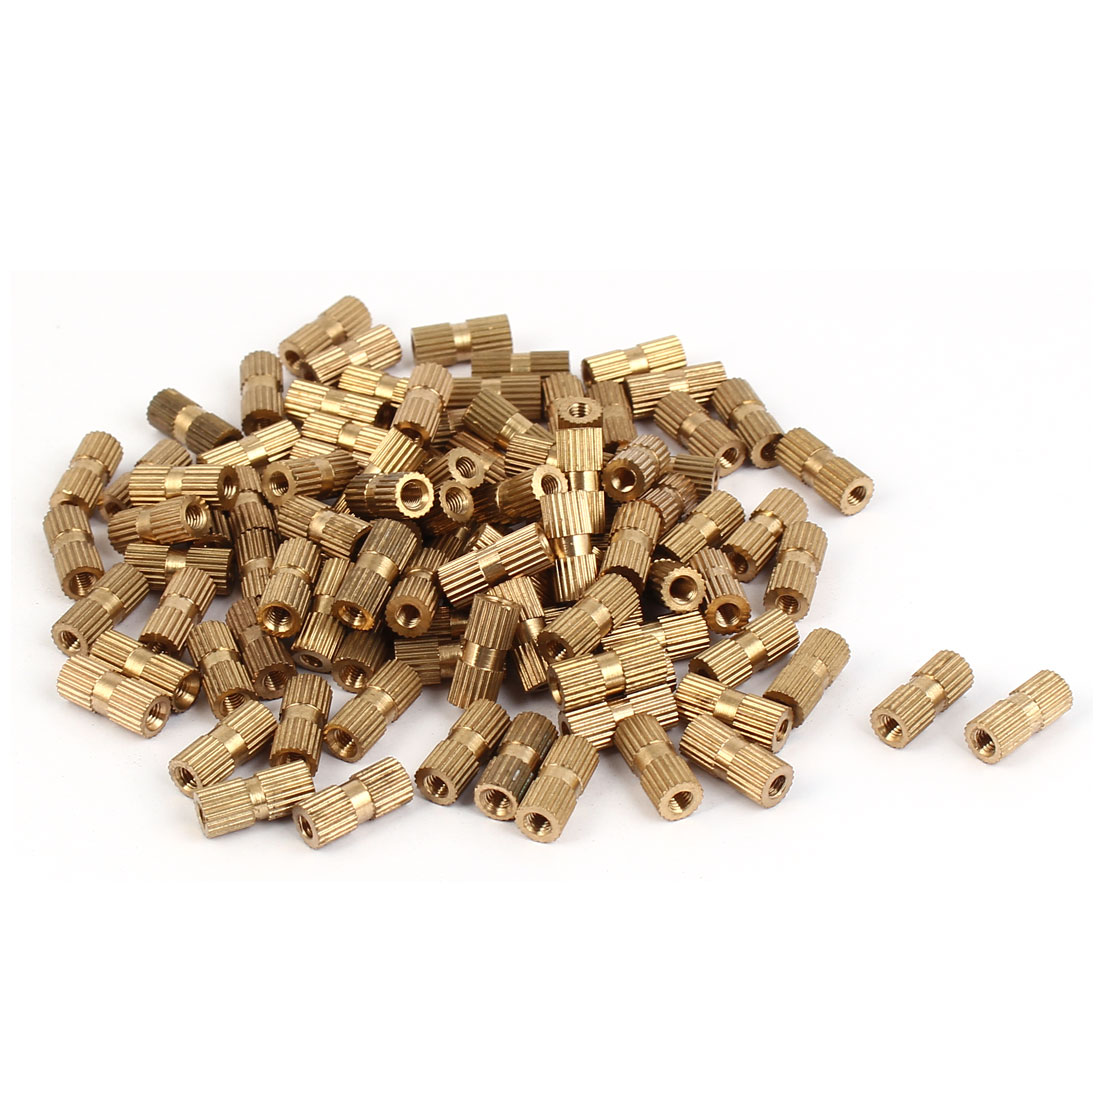 M3 x 12mm Brass Cylinder Injection Molding Knurled Insert Embedded Nuts 100PCS